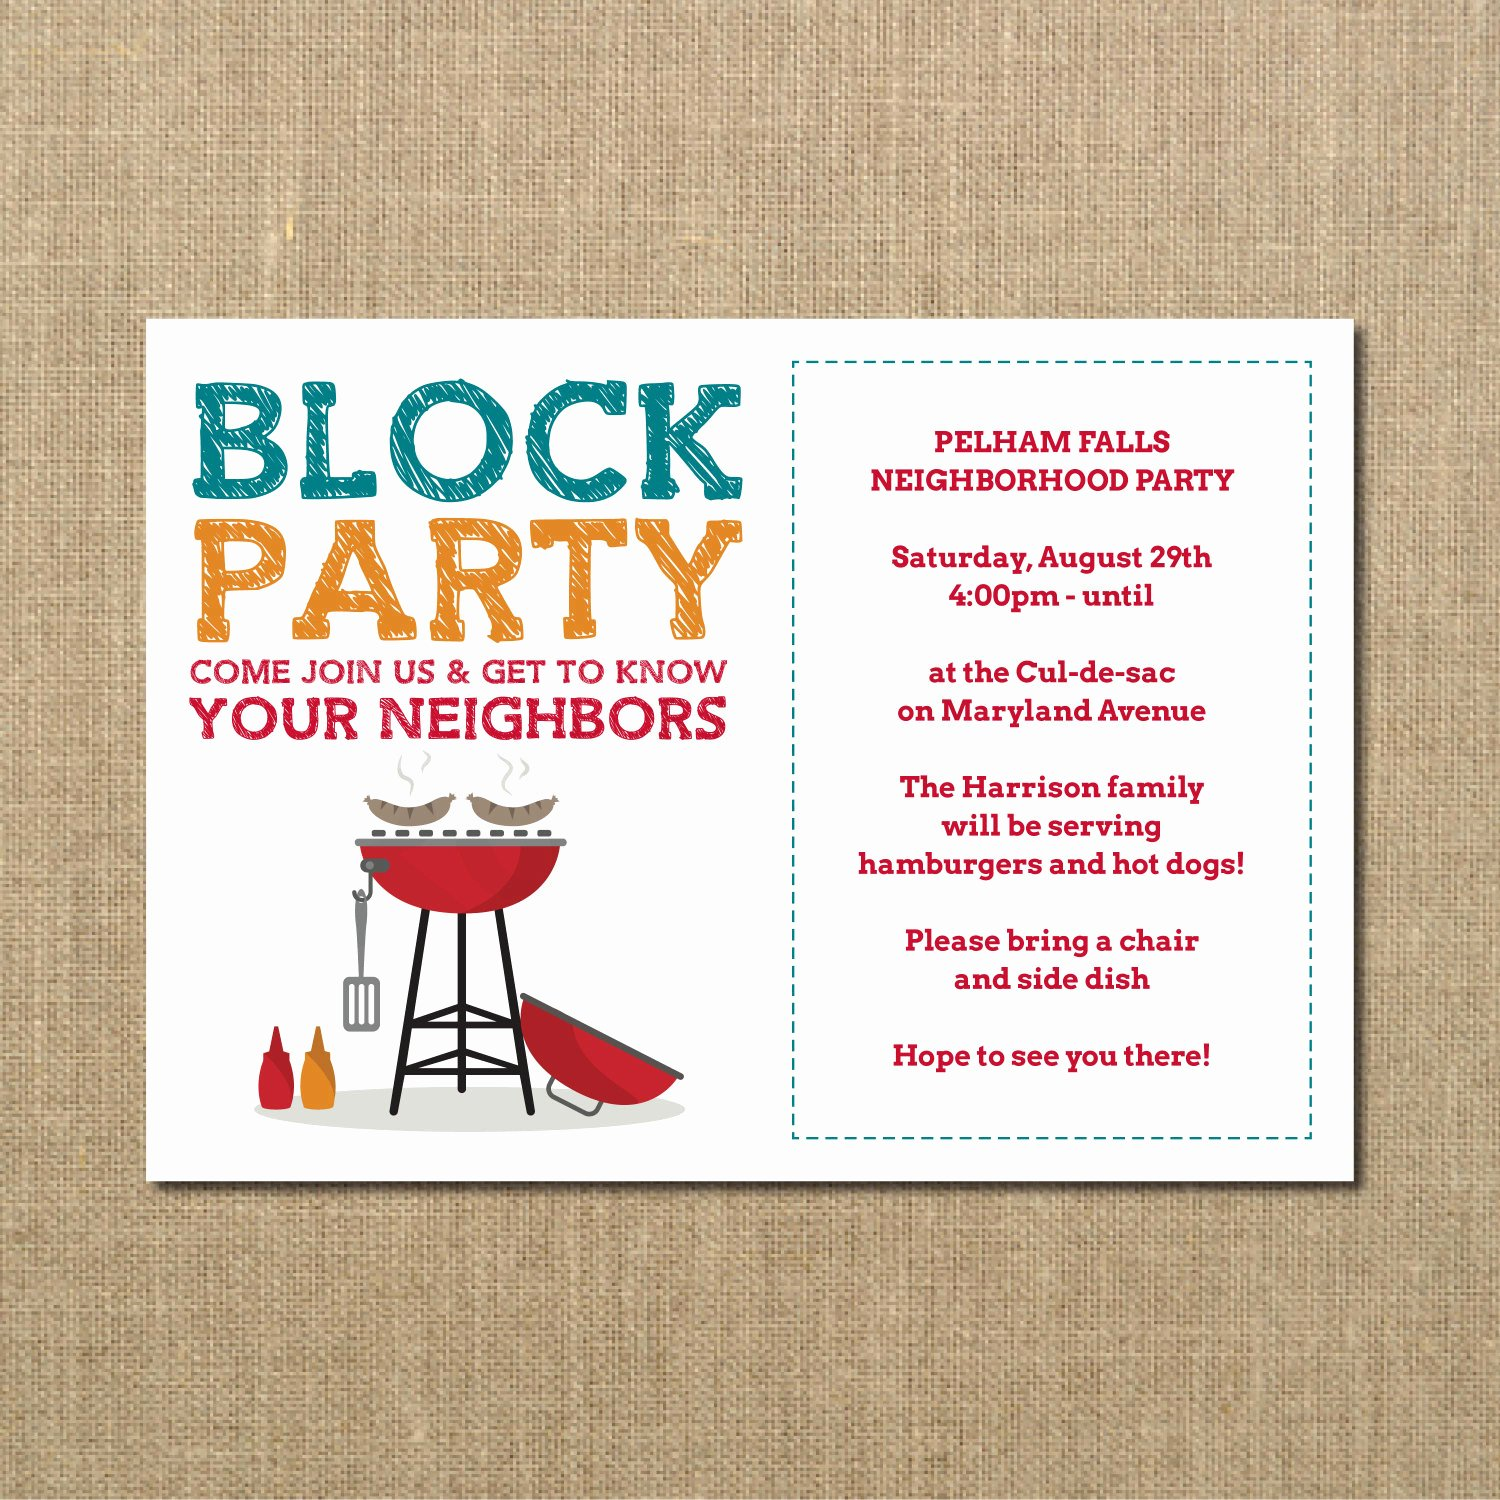 Neighborhood Block Party Flyer Template Beautiful Neighborhood Block Party Cookout Invitation Grilling Out